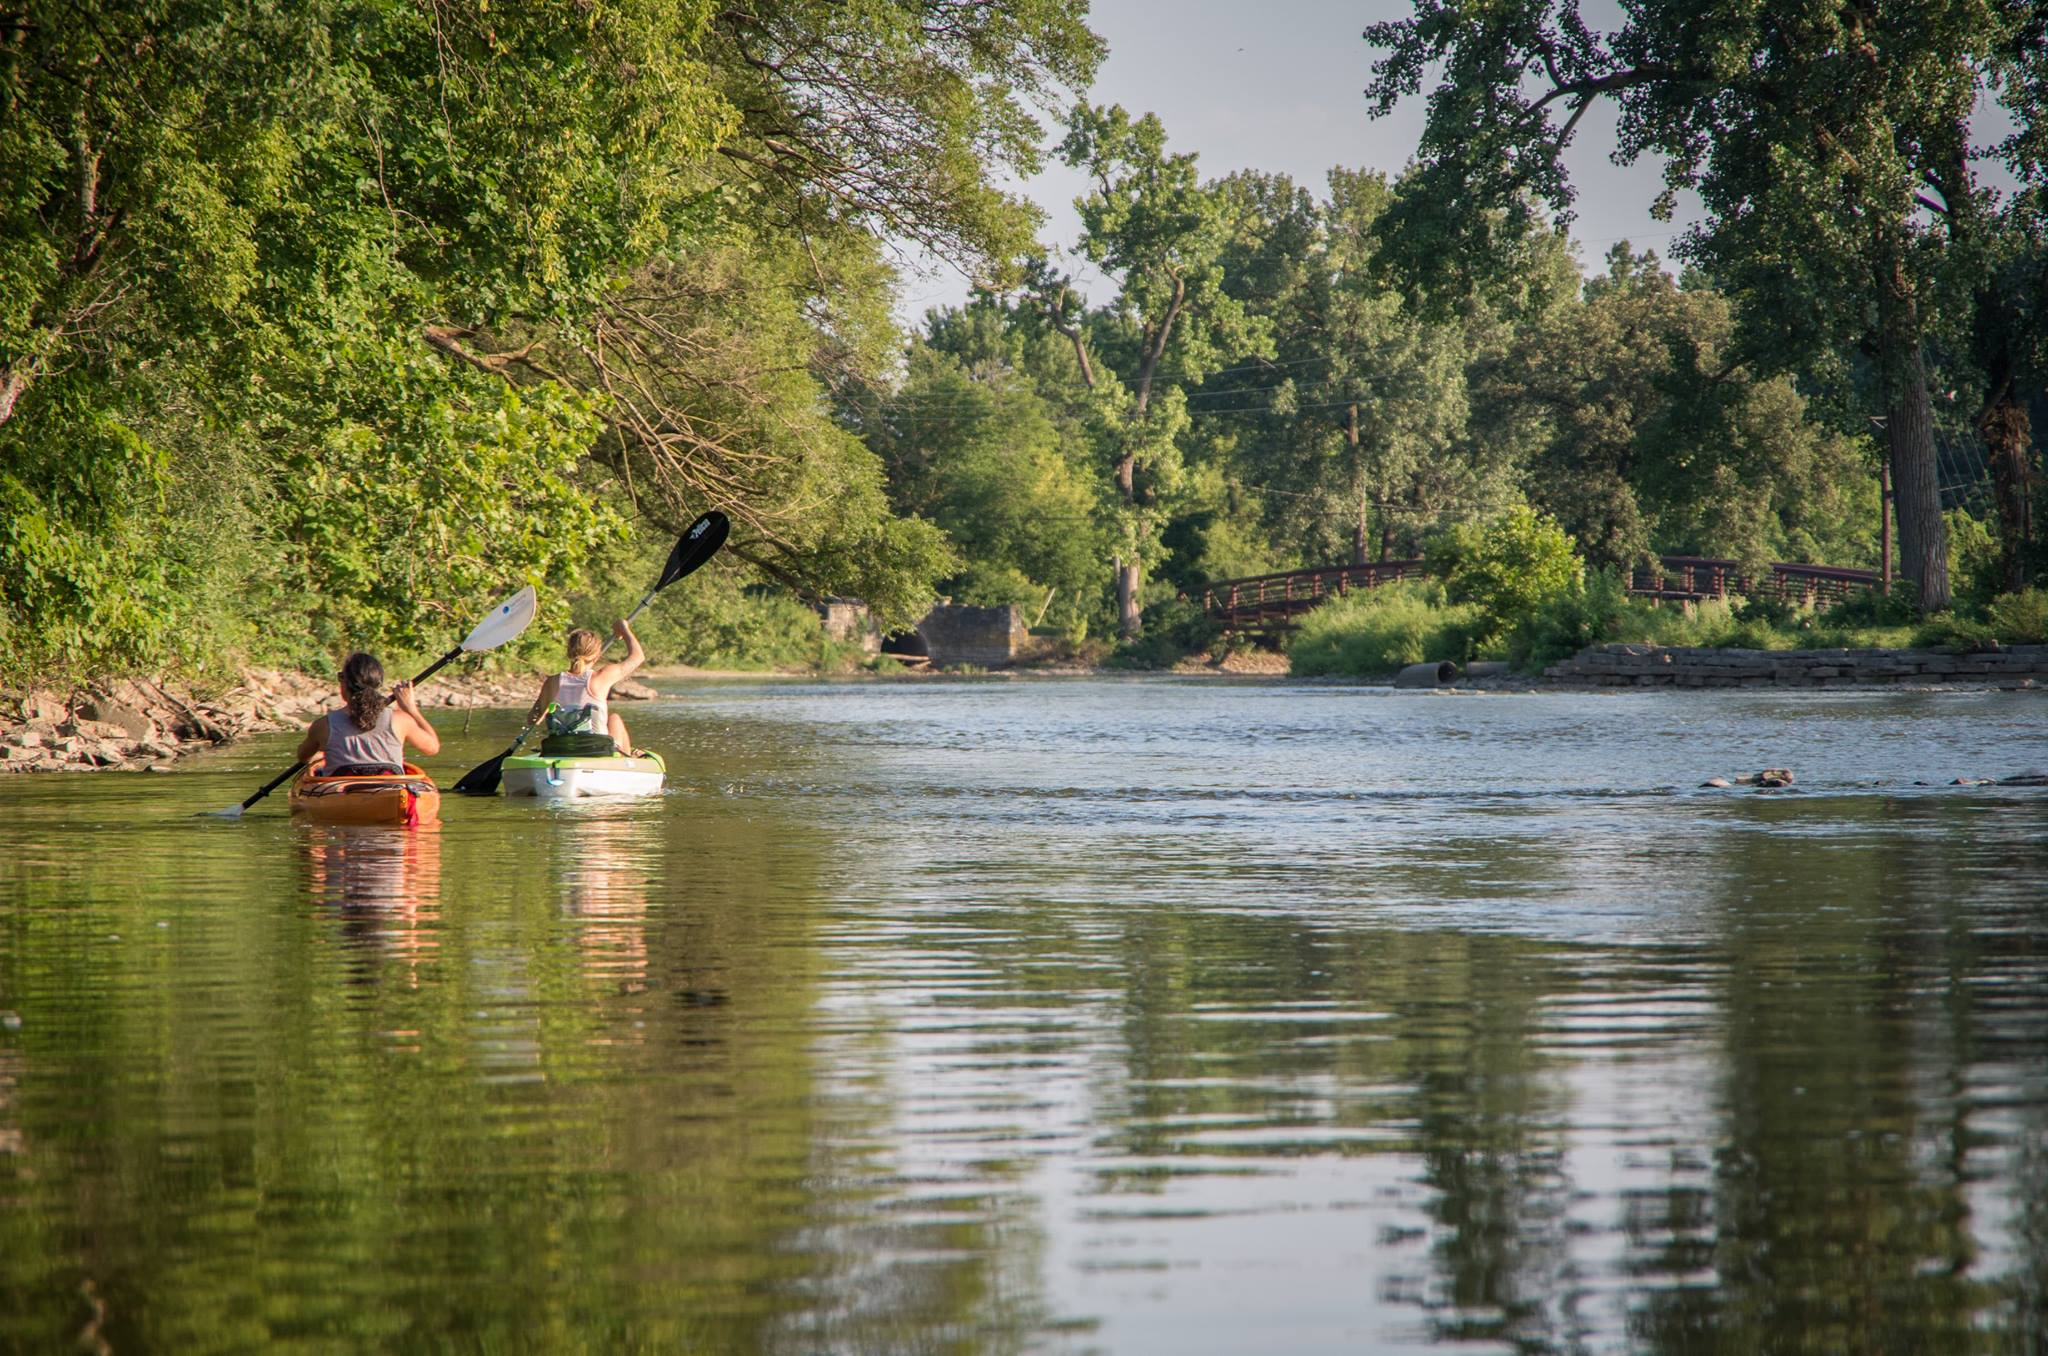 Fox River in Batavia Photo by: James Cardis